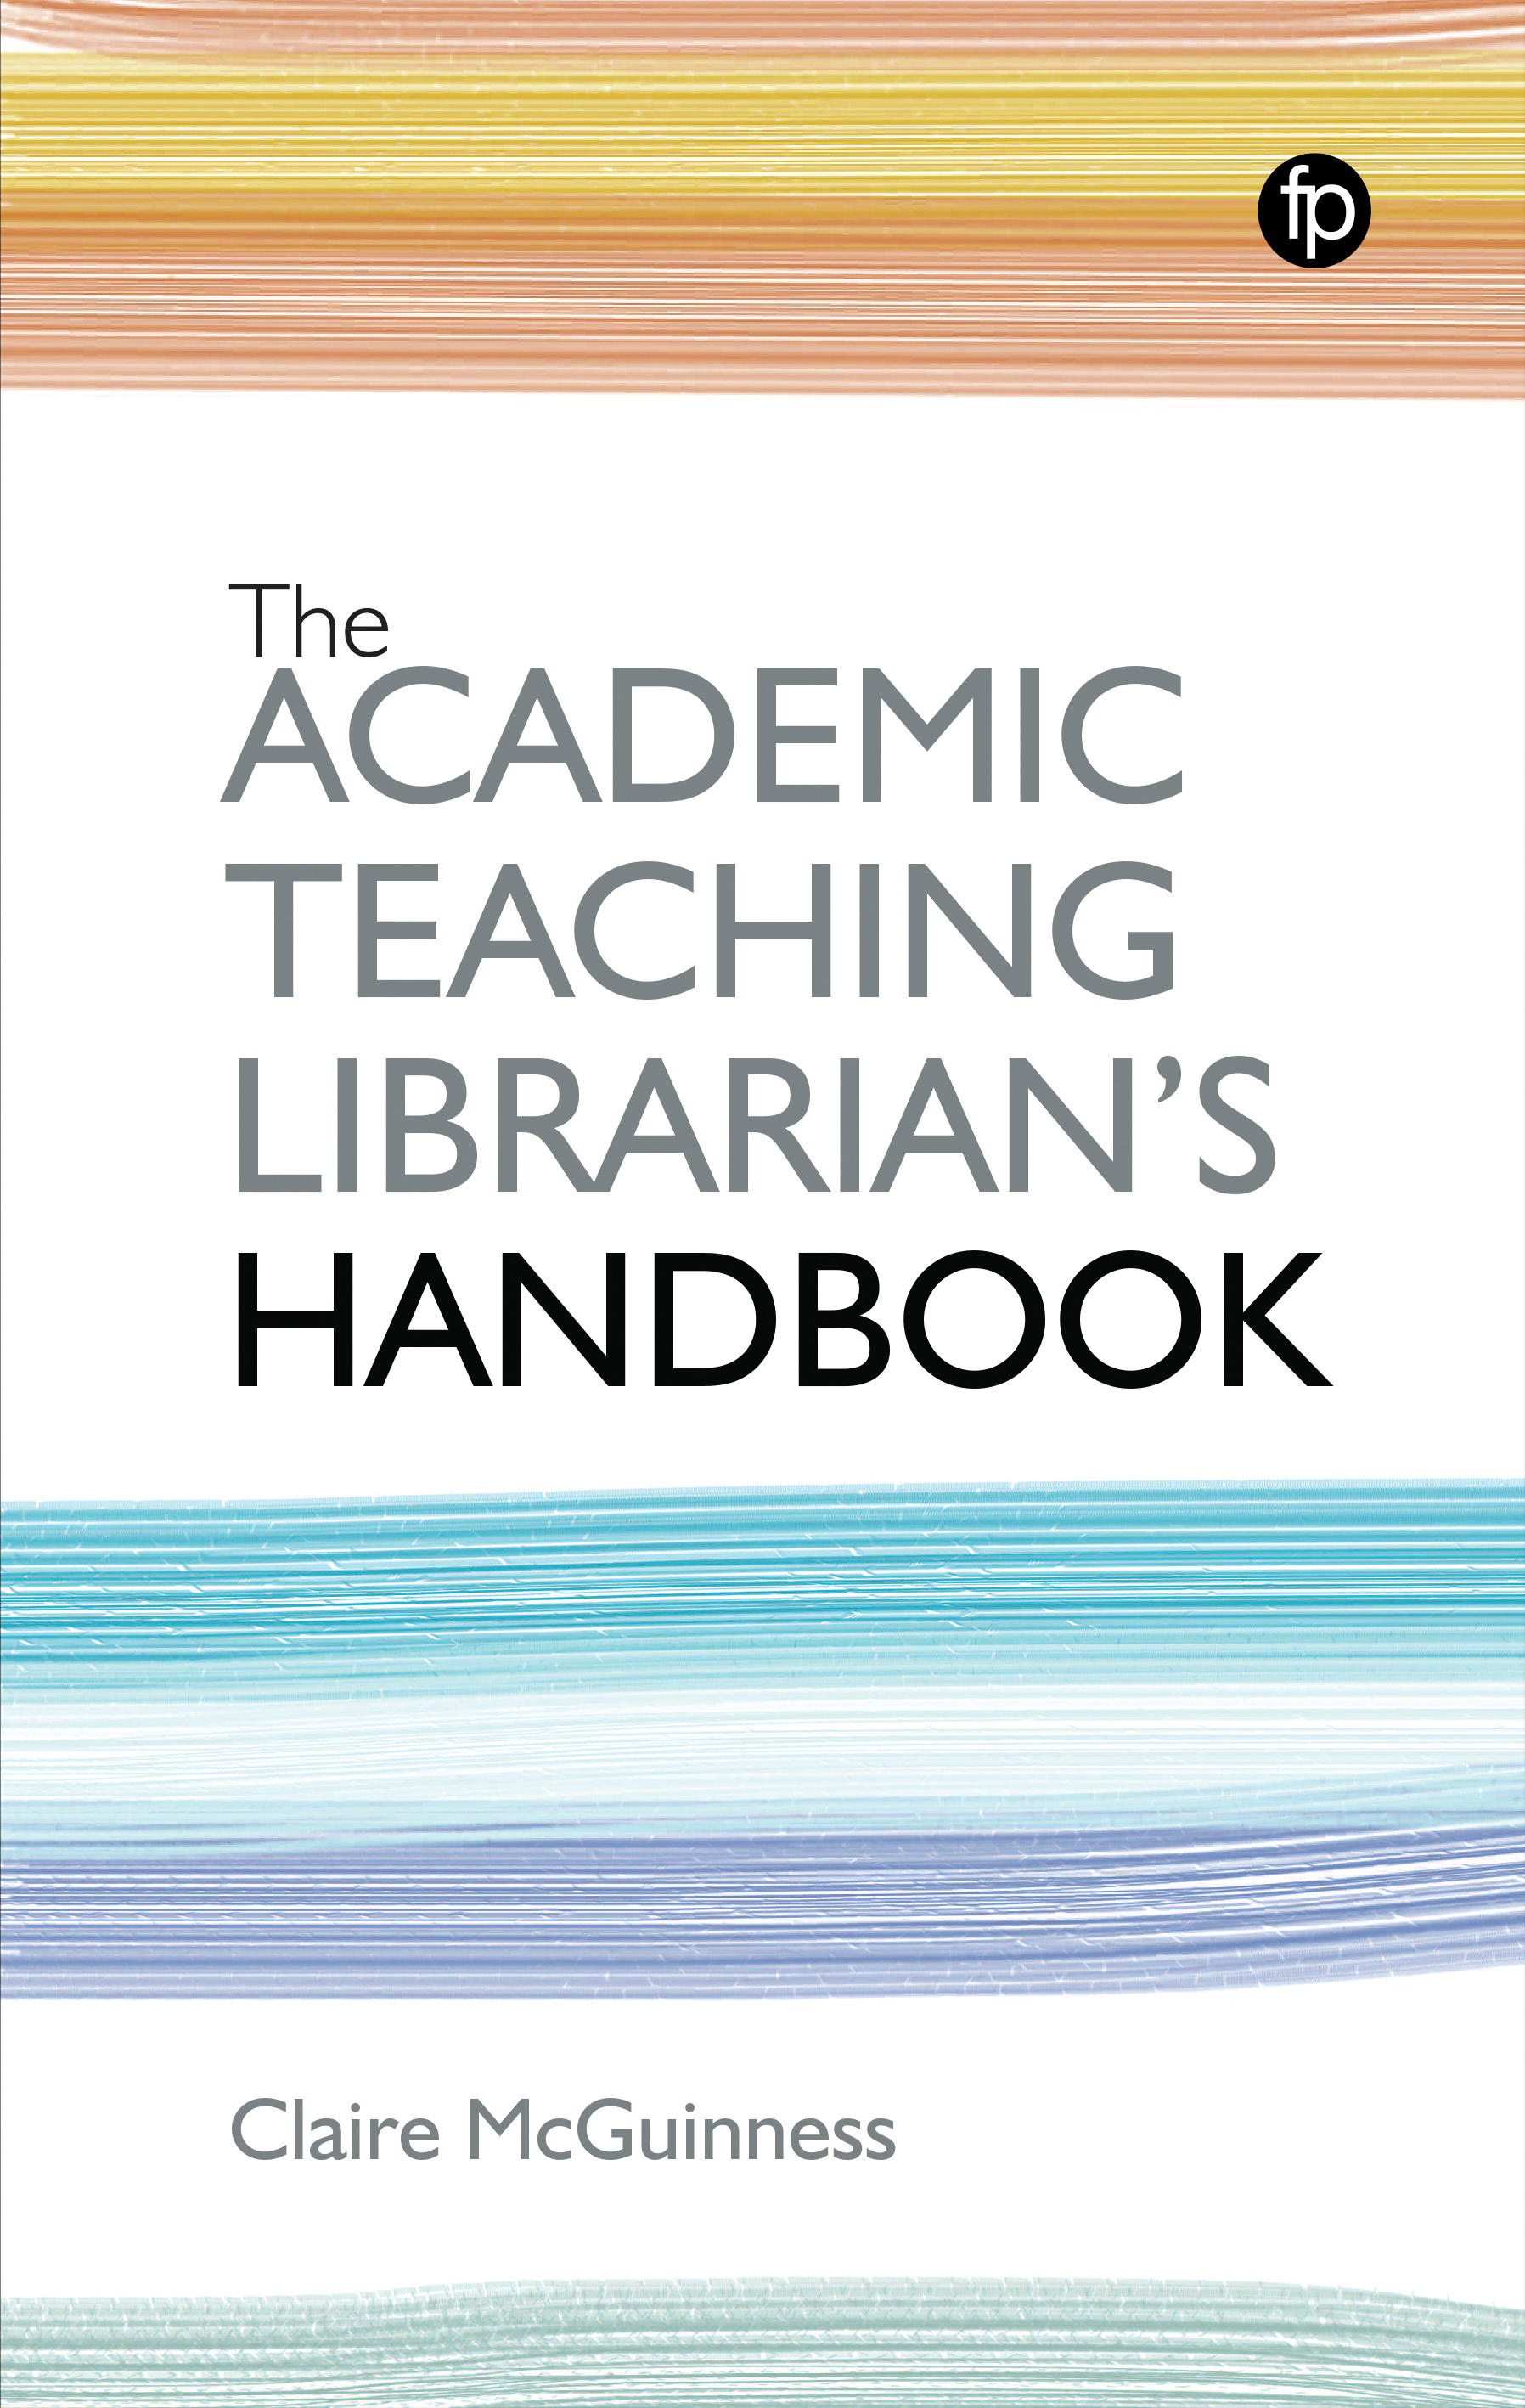 book cover for The Academic Teaching Librarian's Handbook